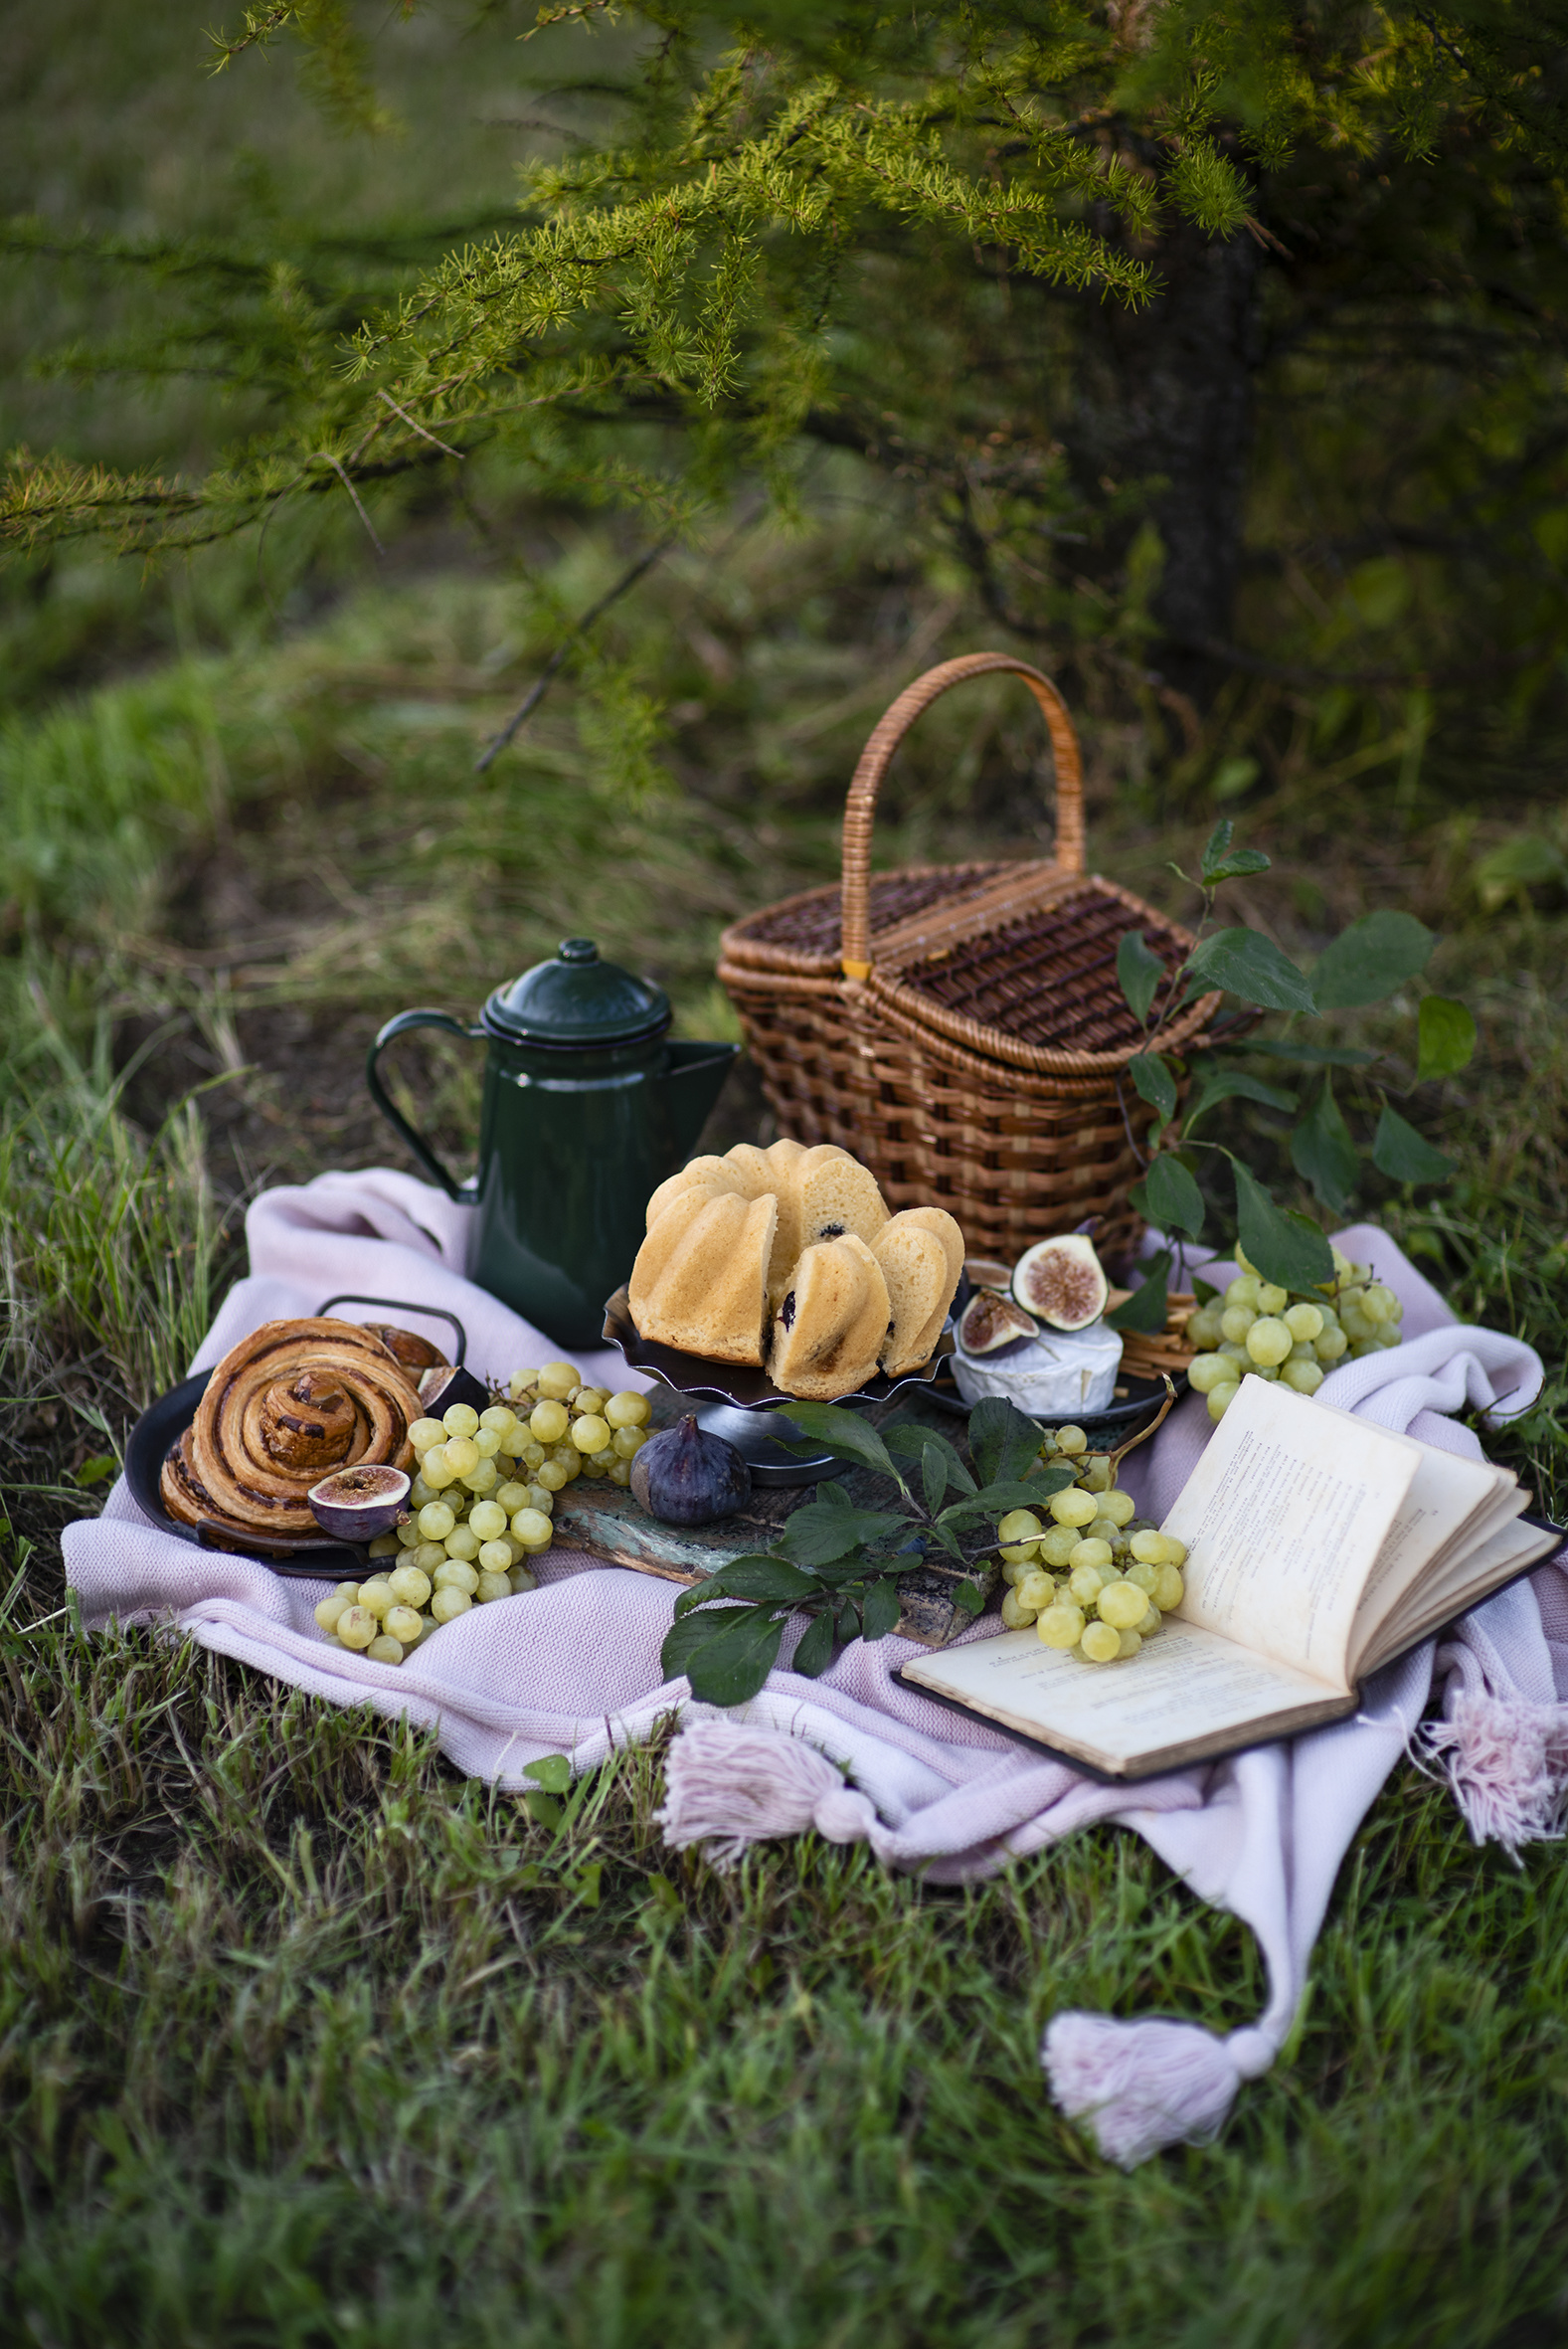 Desktop Wallpapers Picnic Pound Cake ficus carica Kettle Grapes Wicker basket Food books  for Mobile phone figs Common fig Book